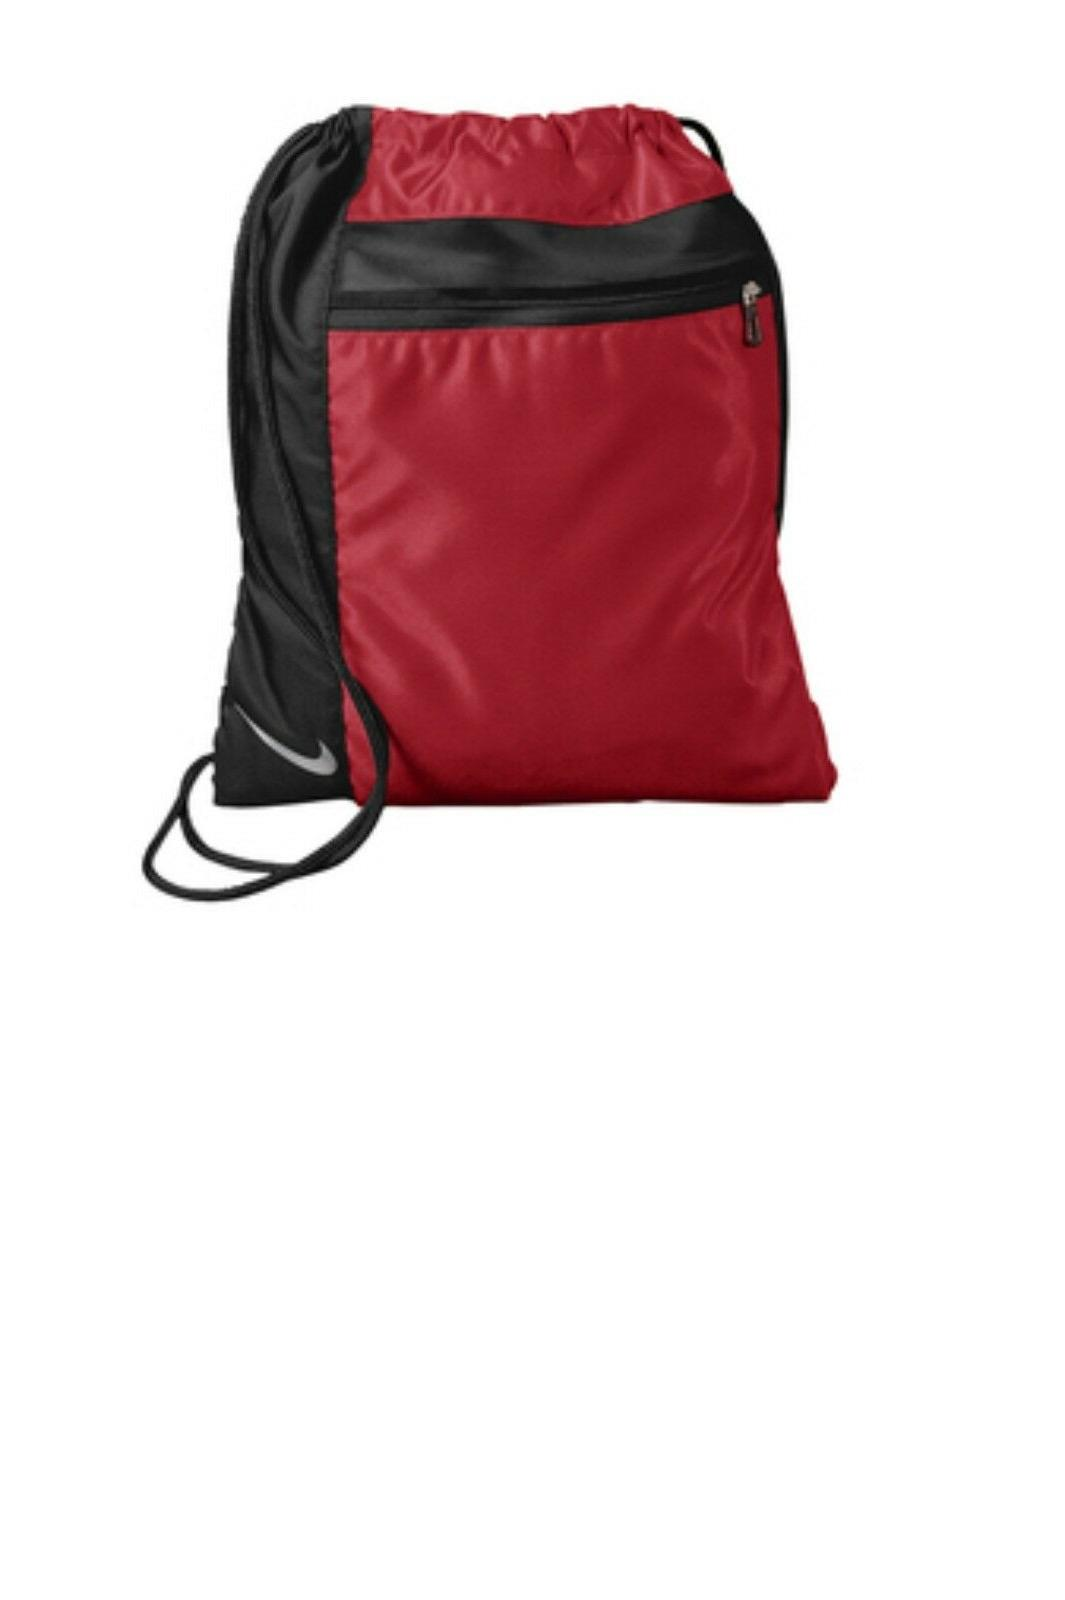 cinch sack nwt available in three different